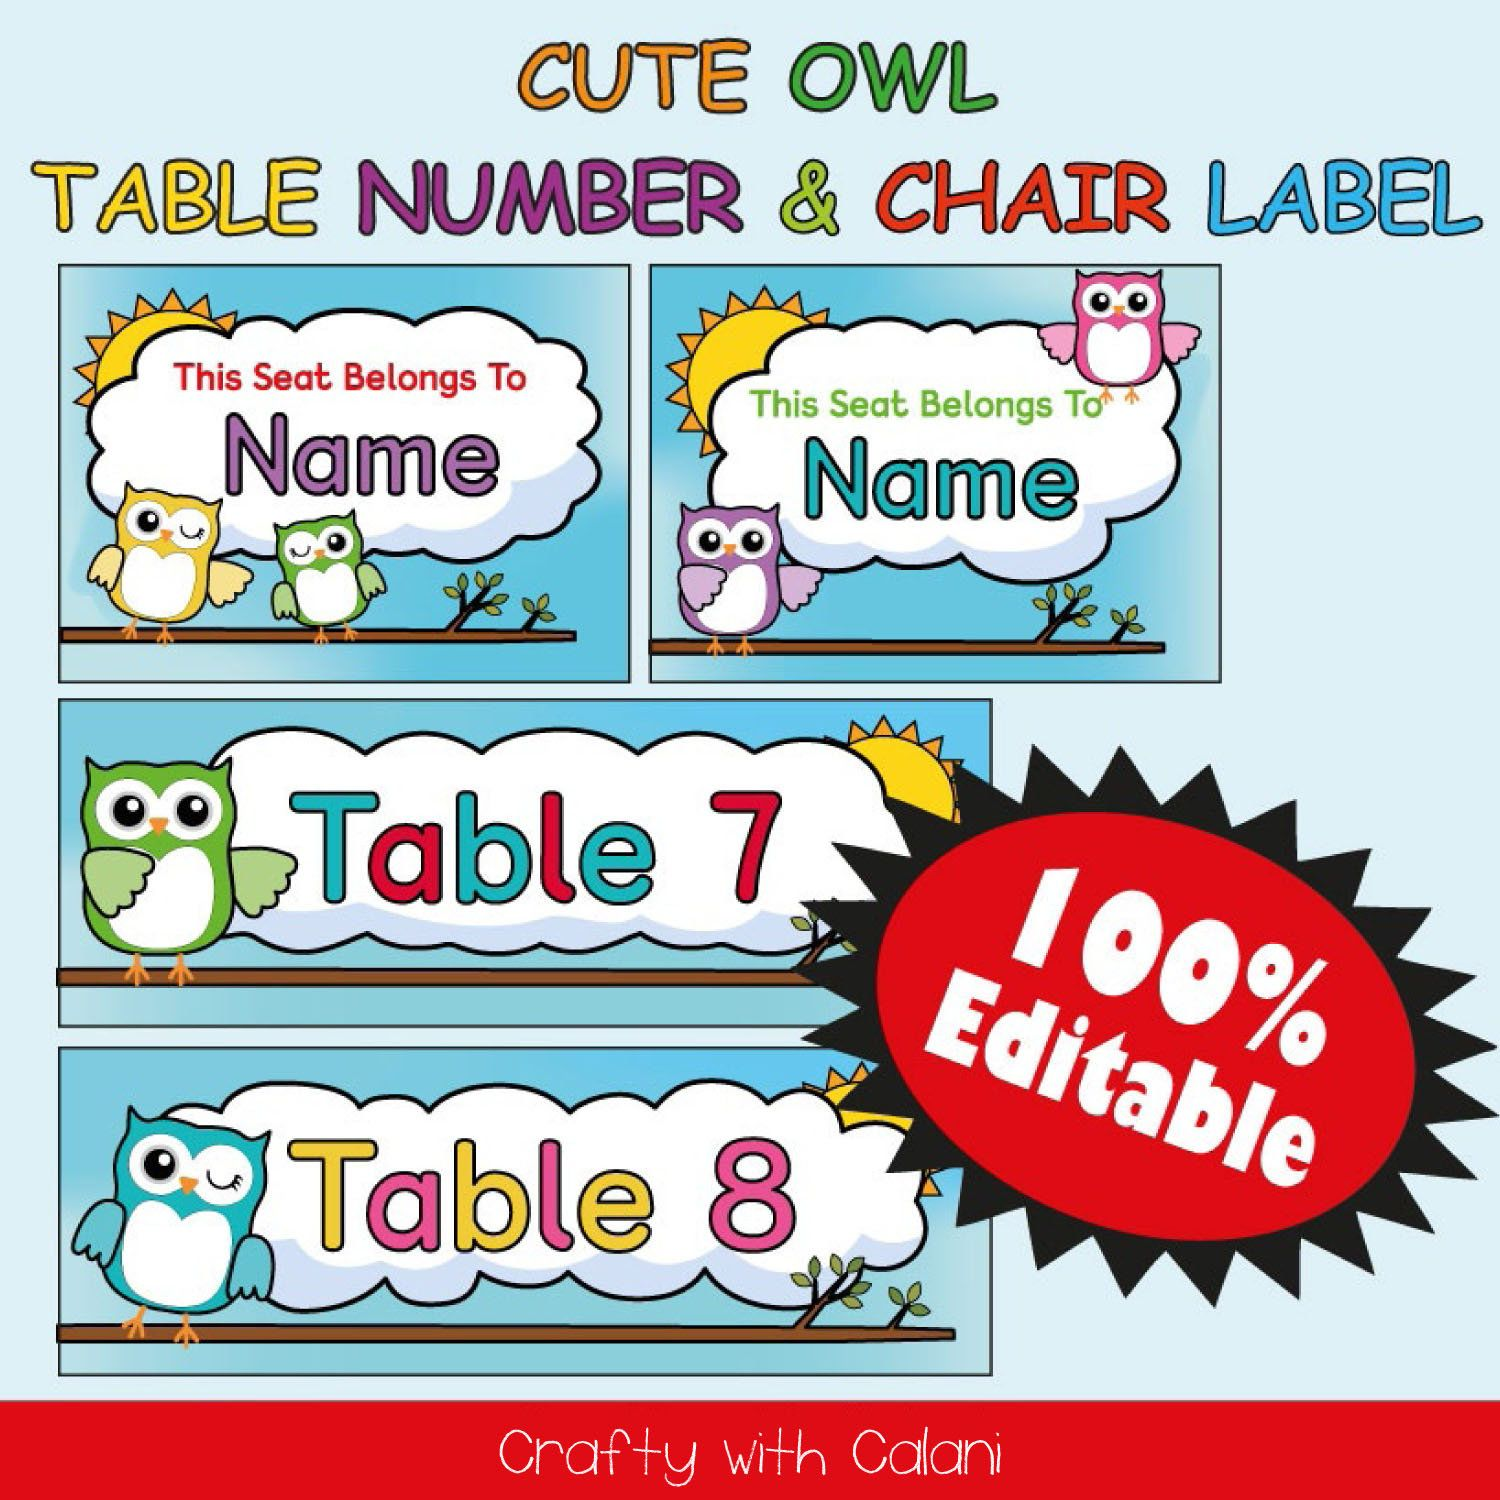 Classroom Table And Chair Labels Cute Owl Theme Classroom Classroom Table Number Template Chair Labels Template Owl Labels Printable Owl Theme Classroom Owl Labels Classroom Themes